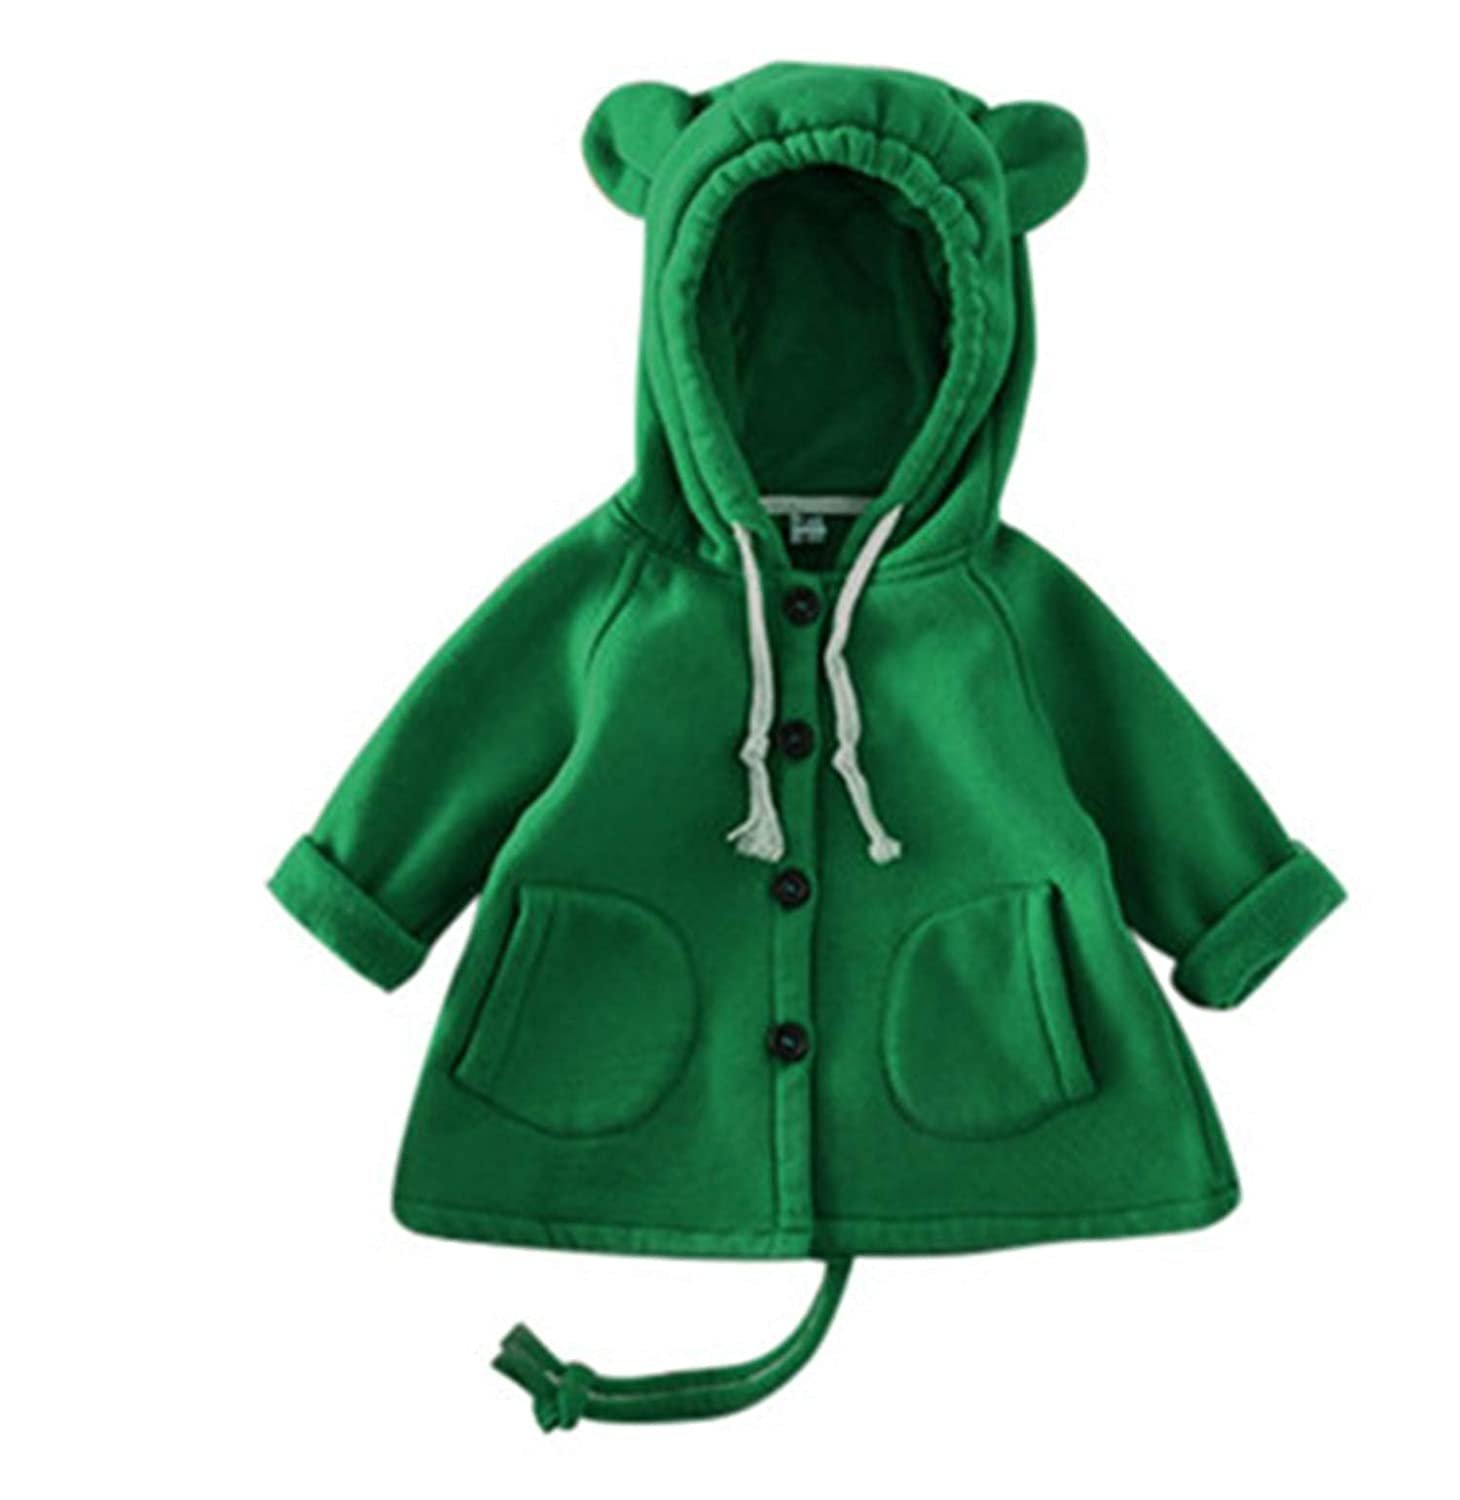 Paddy Meredith Autumn Winter Baby Girl Cartoon Big Ears Outerwear Kids Jacket Cotton Sweater